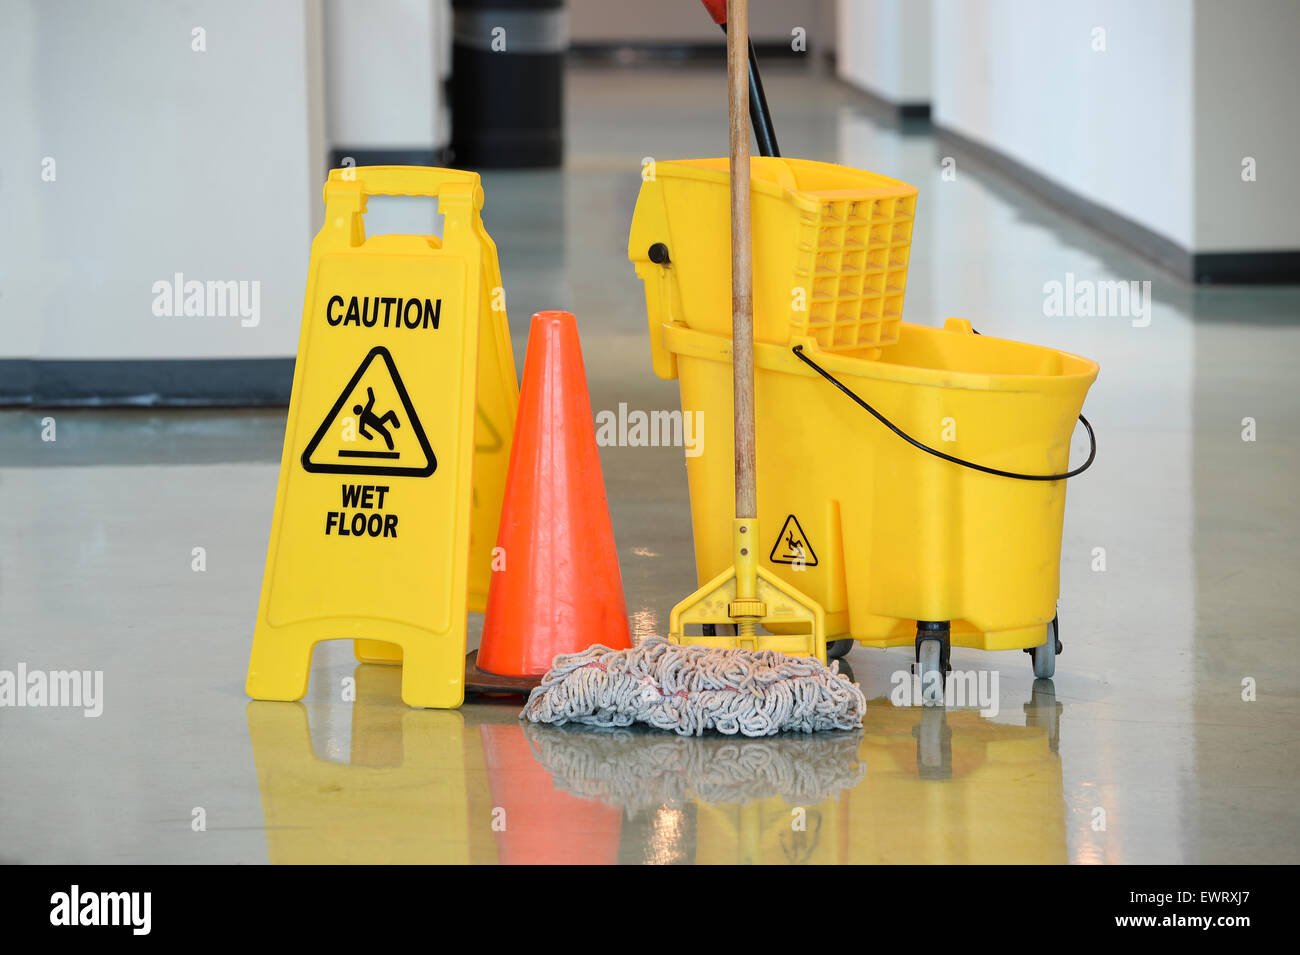 Caution Sign With Mop And Bucket On Office Floor Stock